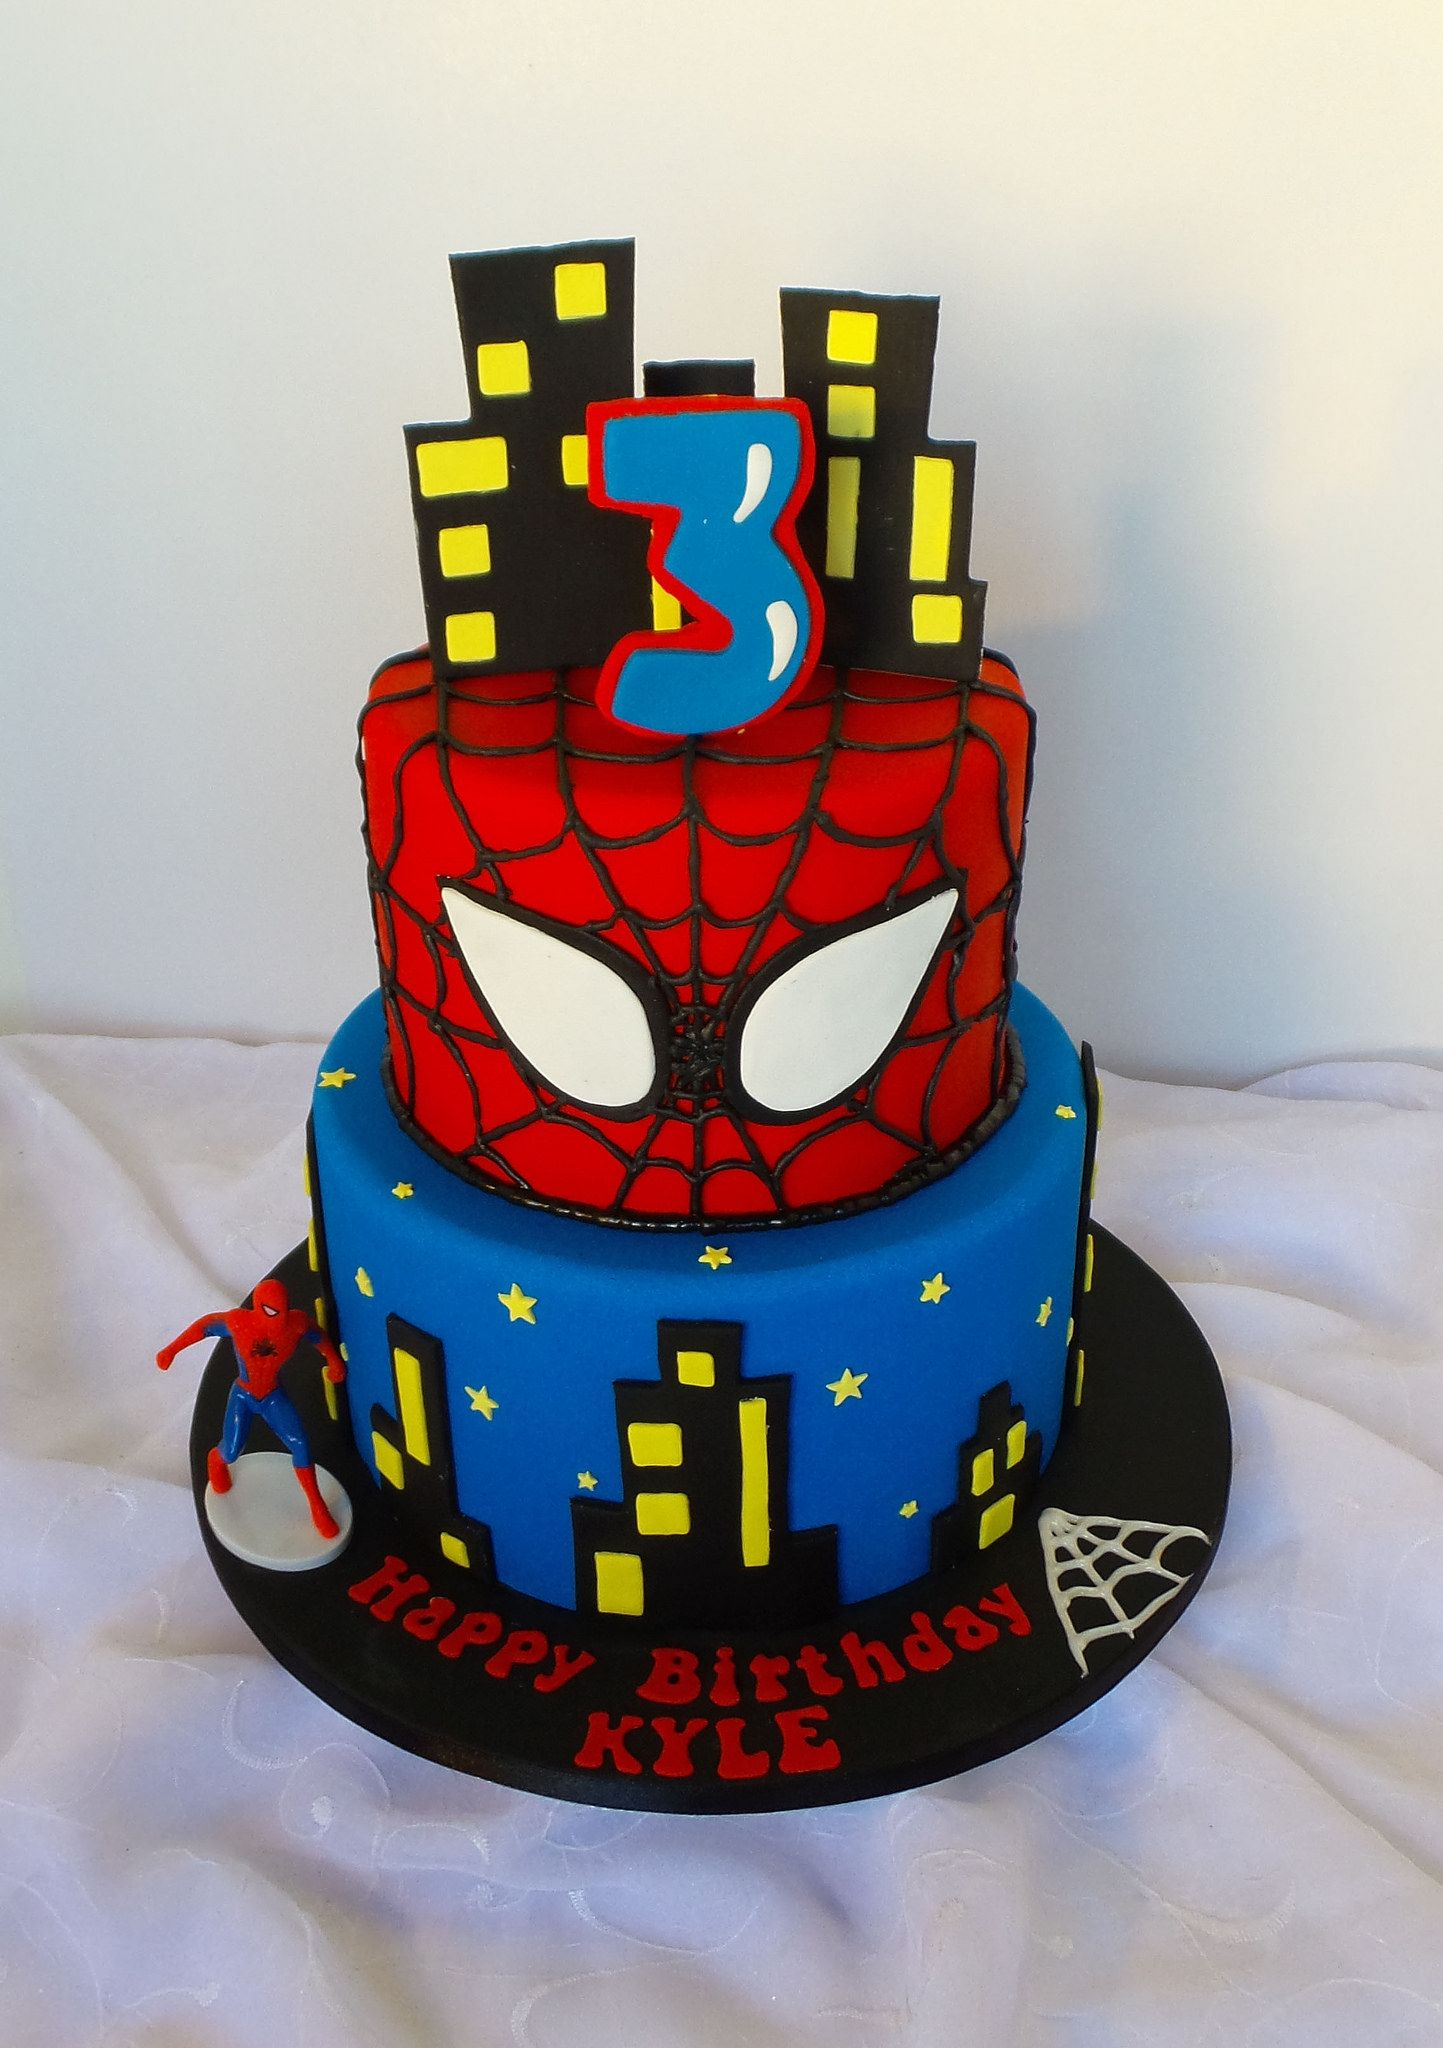 Cake Designs Manly : Two tier Spiderman themed birthday cake Birthday cake ...